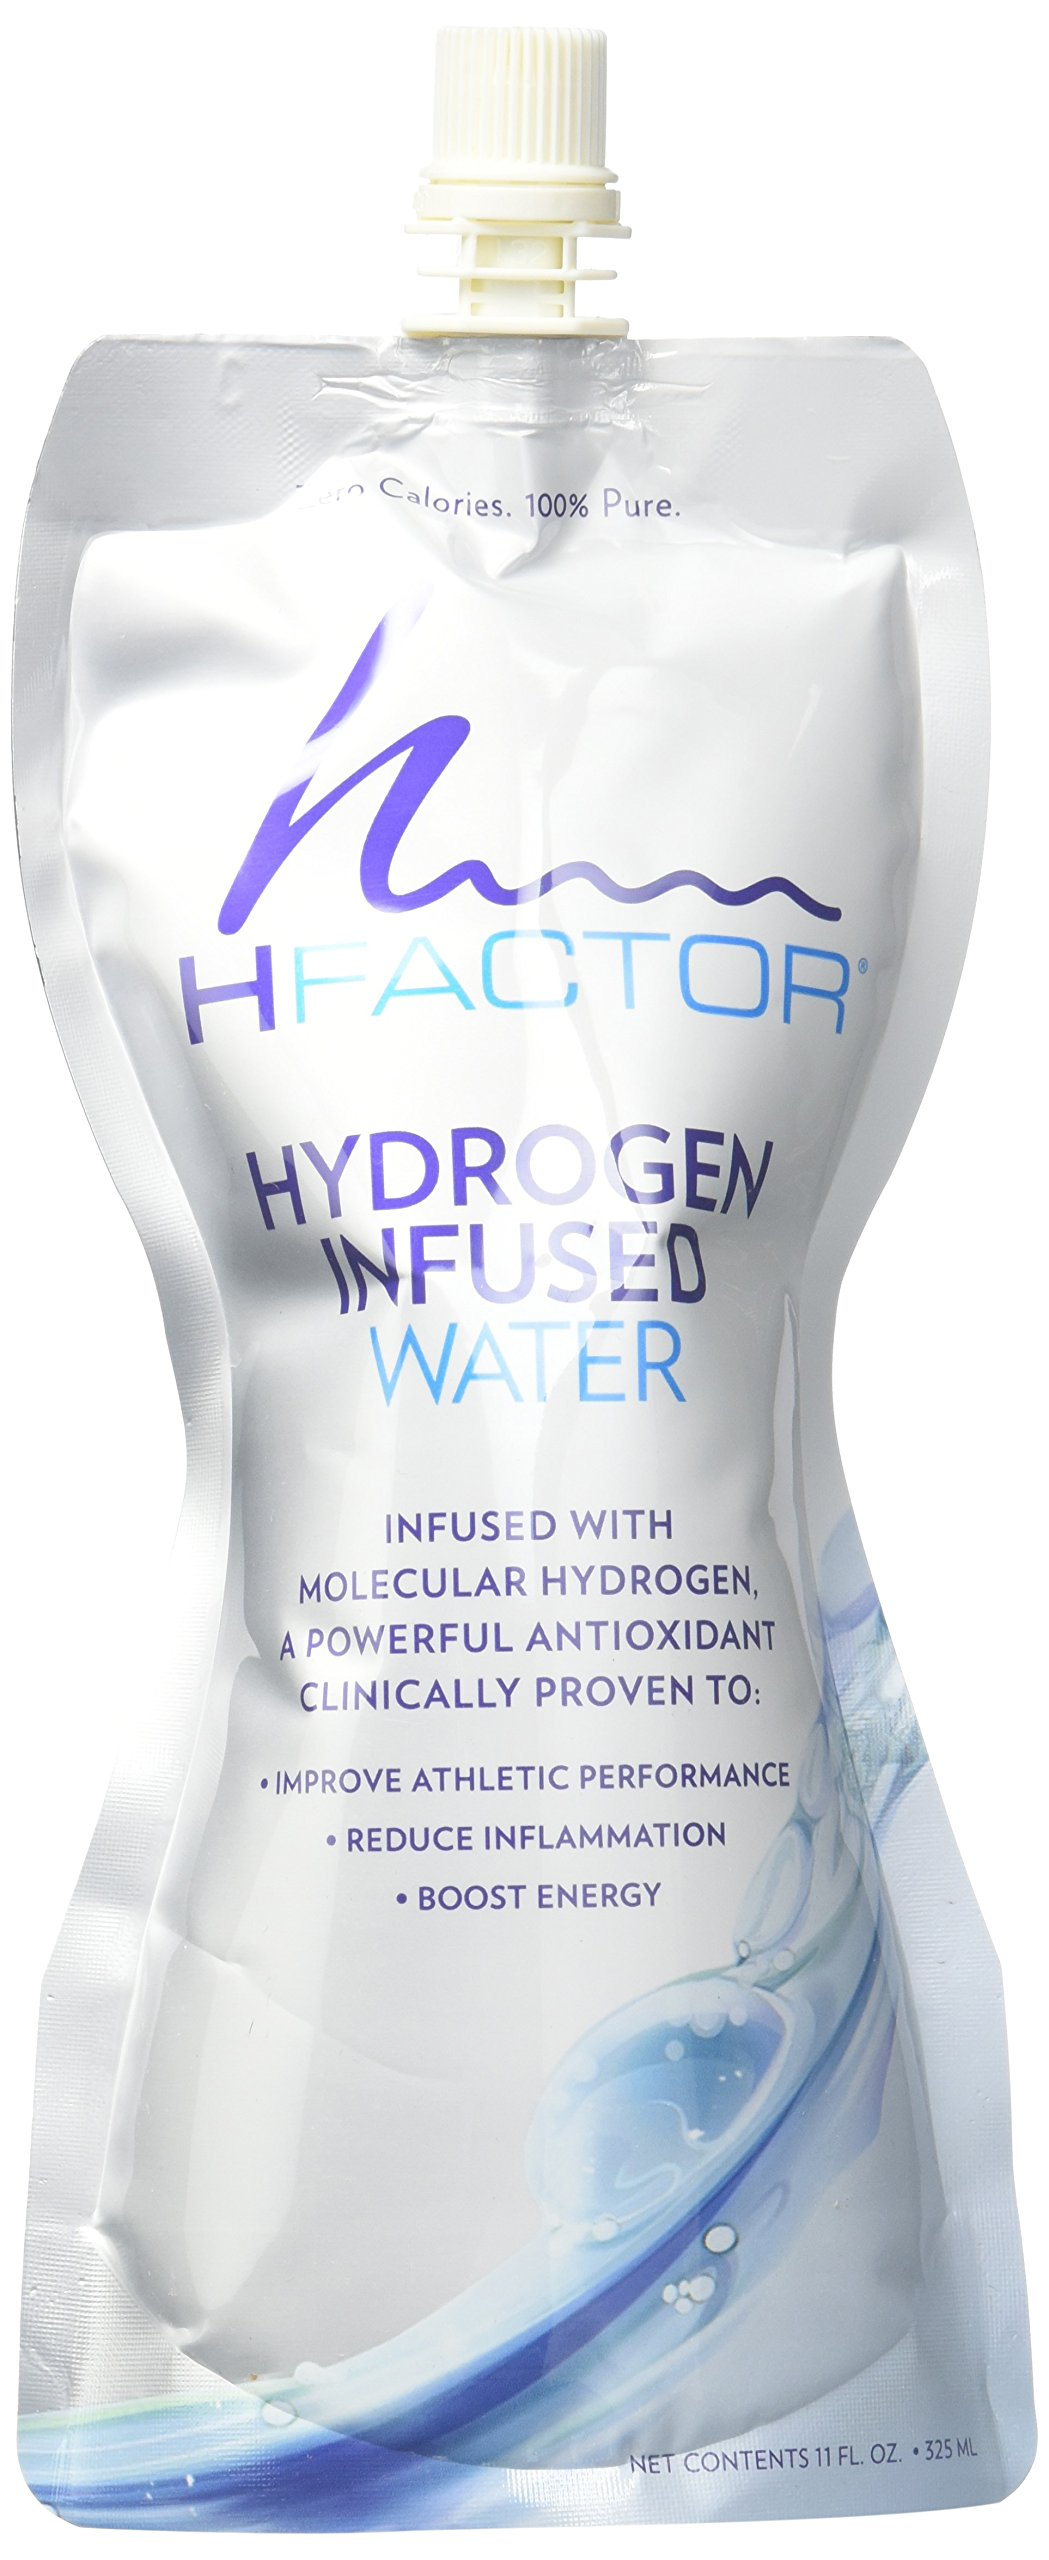 HFactor Hydrogen Infused Water, Pure Drinking Water (24 Pack Spout), 11 fl oz